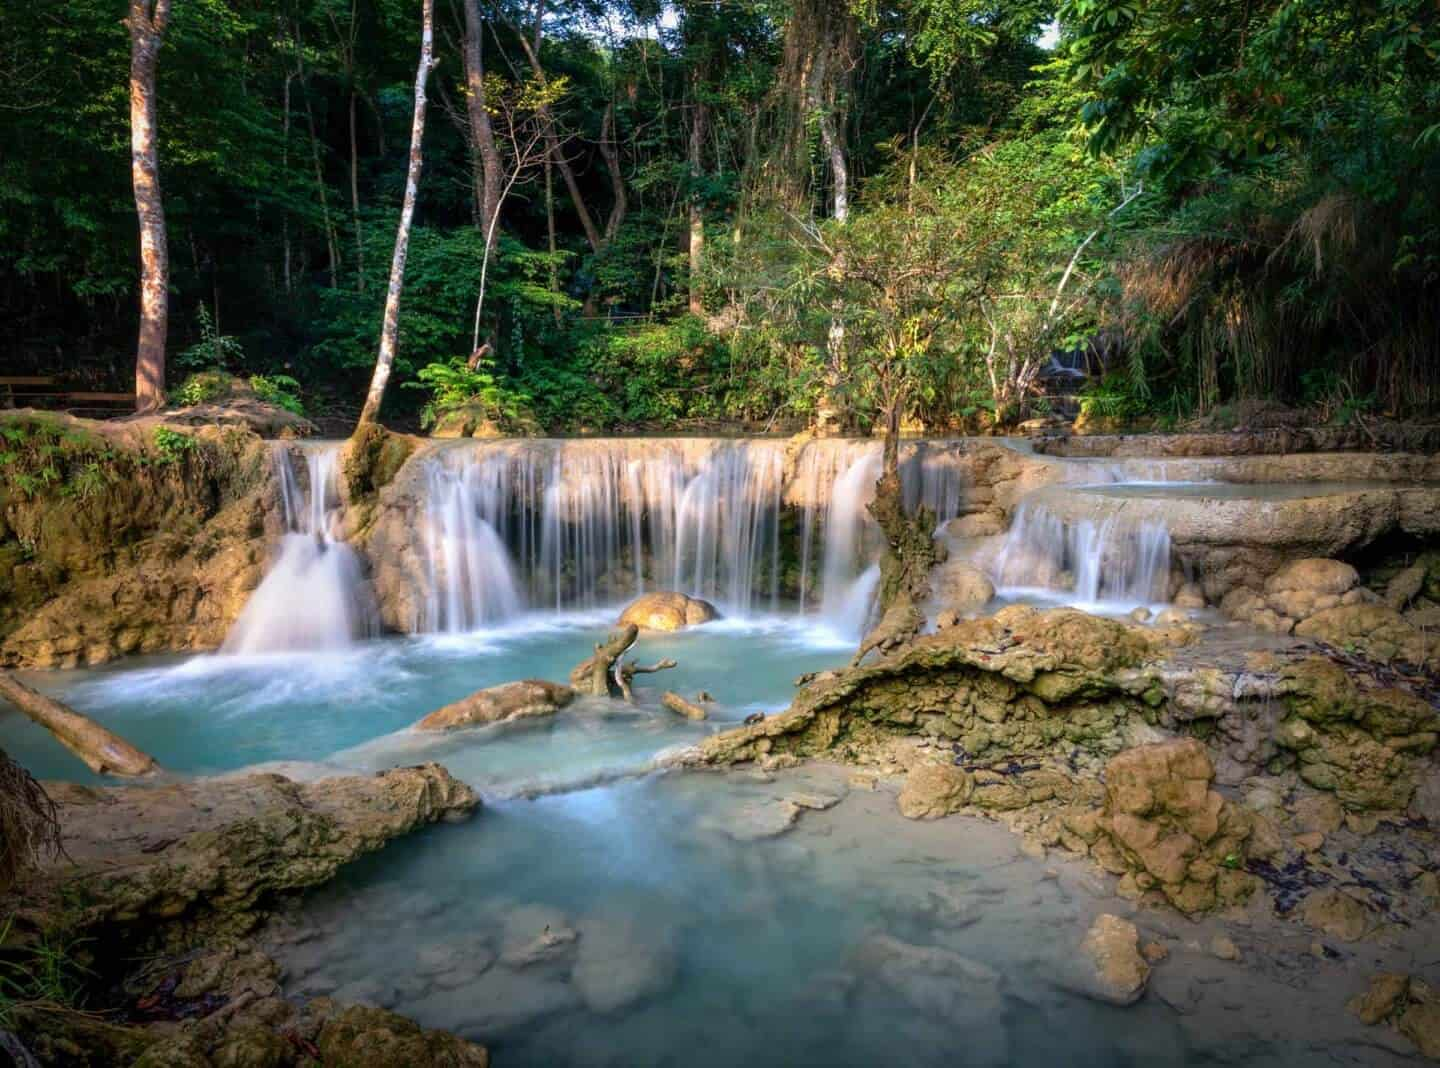 Vibrant colours fill the scene at a small section of the lower Kuang Si Falls.